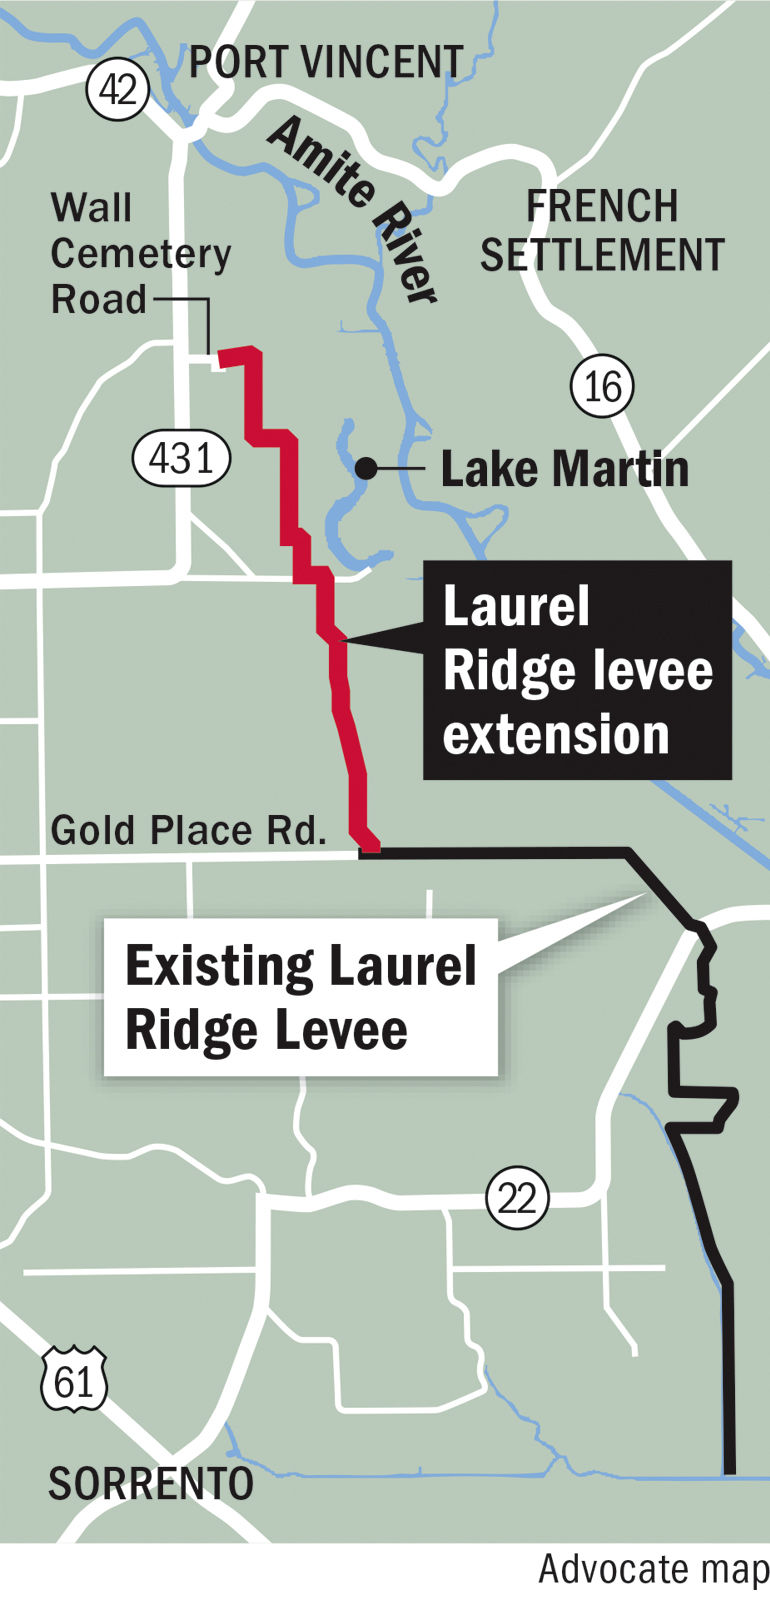 030718 Laurel Ridge Levee.jpg